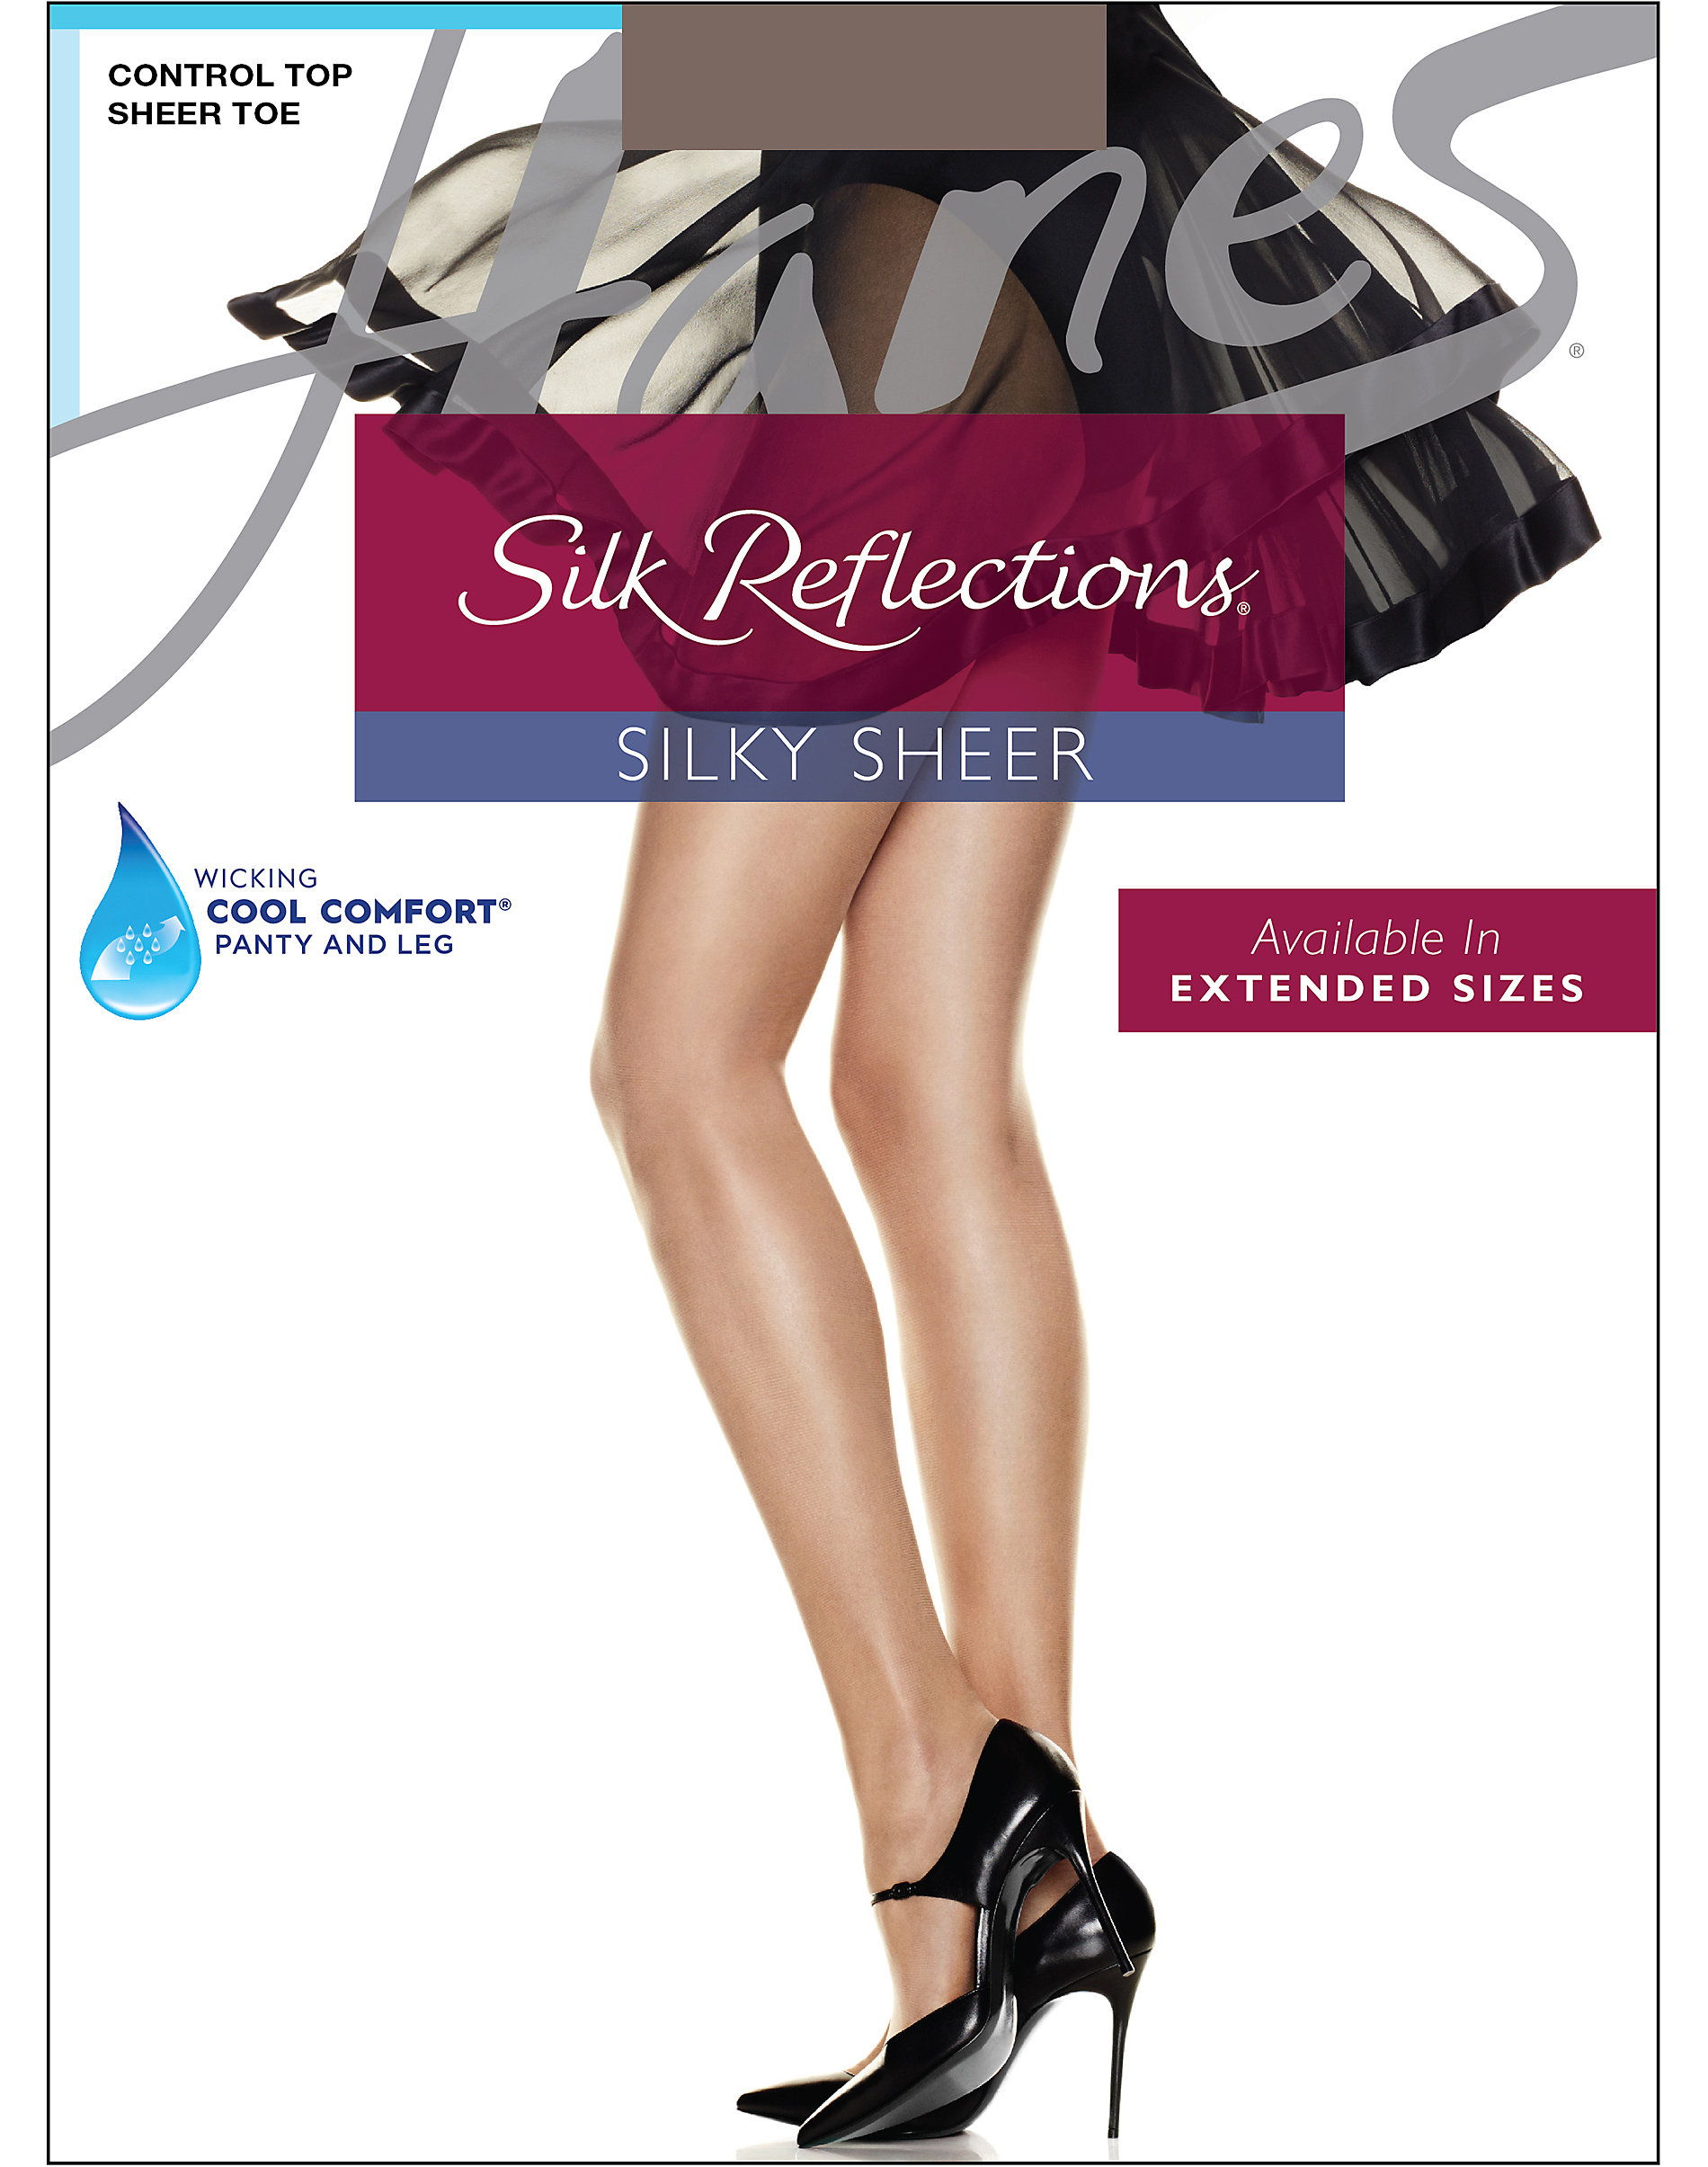 ba027bfd2ec49 Hanes Silk Reflections Control Top, Sandalfoot Pantyhose 4-Pack | eBay